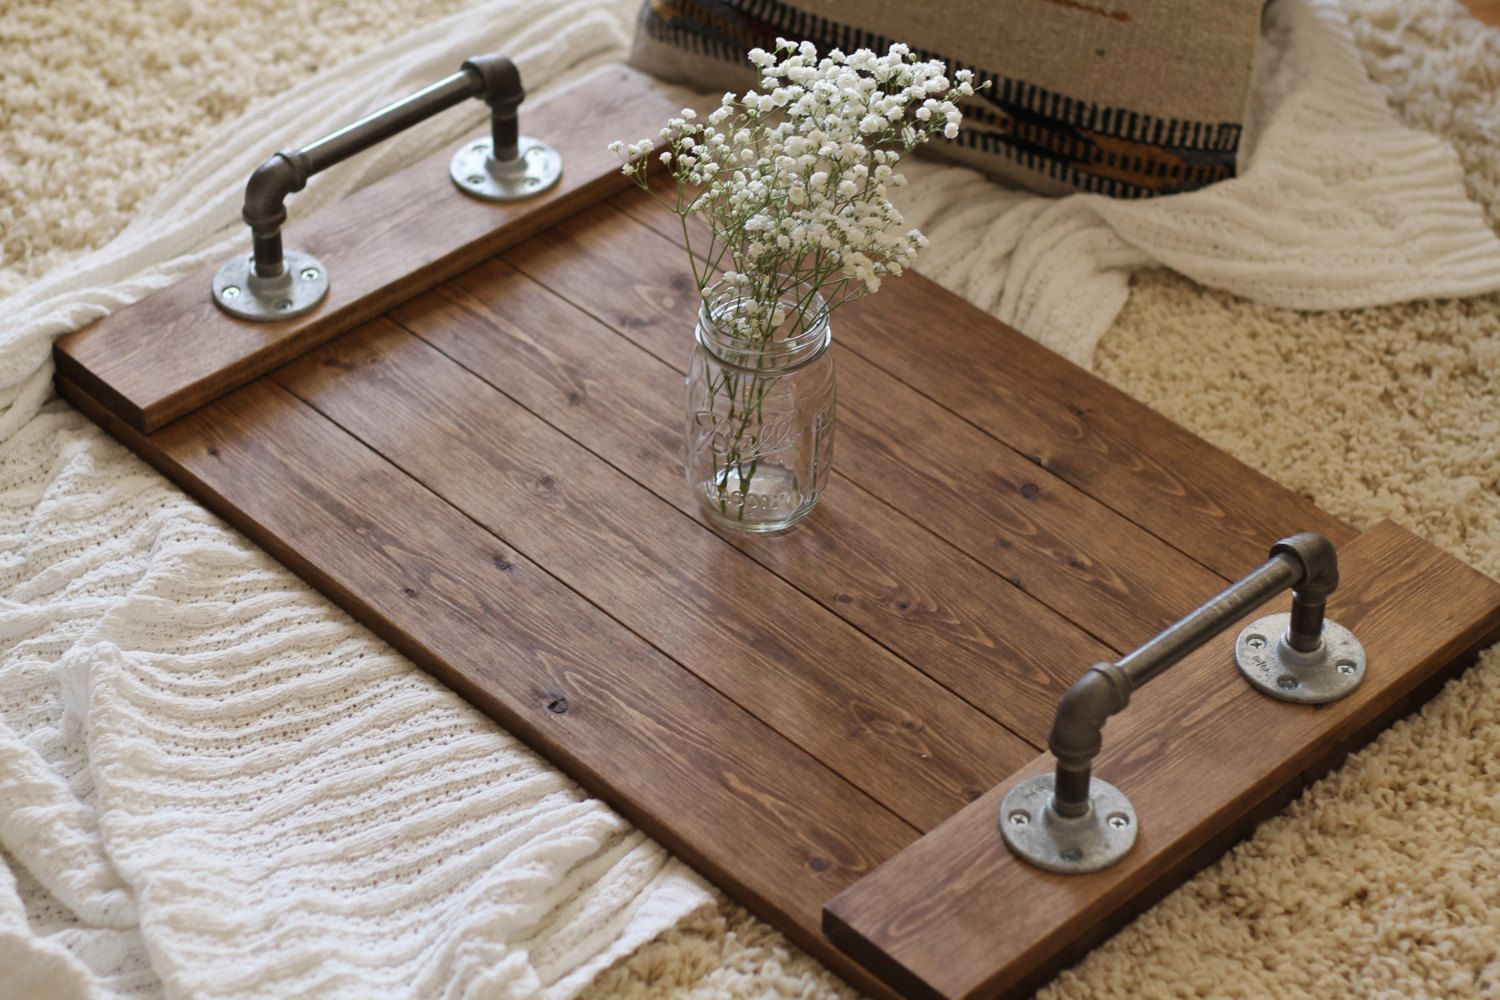 Wooden Decorative Trays Alluring Rustic Industrial Tray Wooden Tray Ottomandunnrusticdesigns Design Inspiration